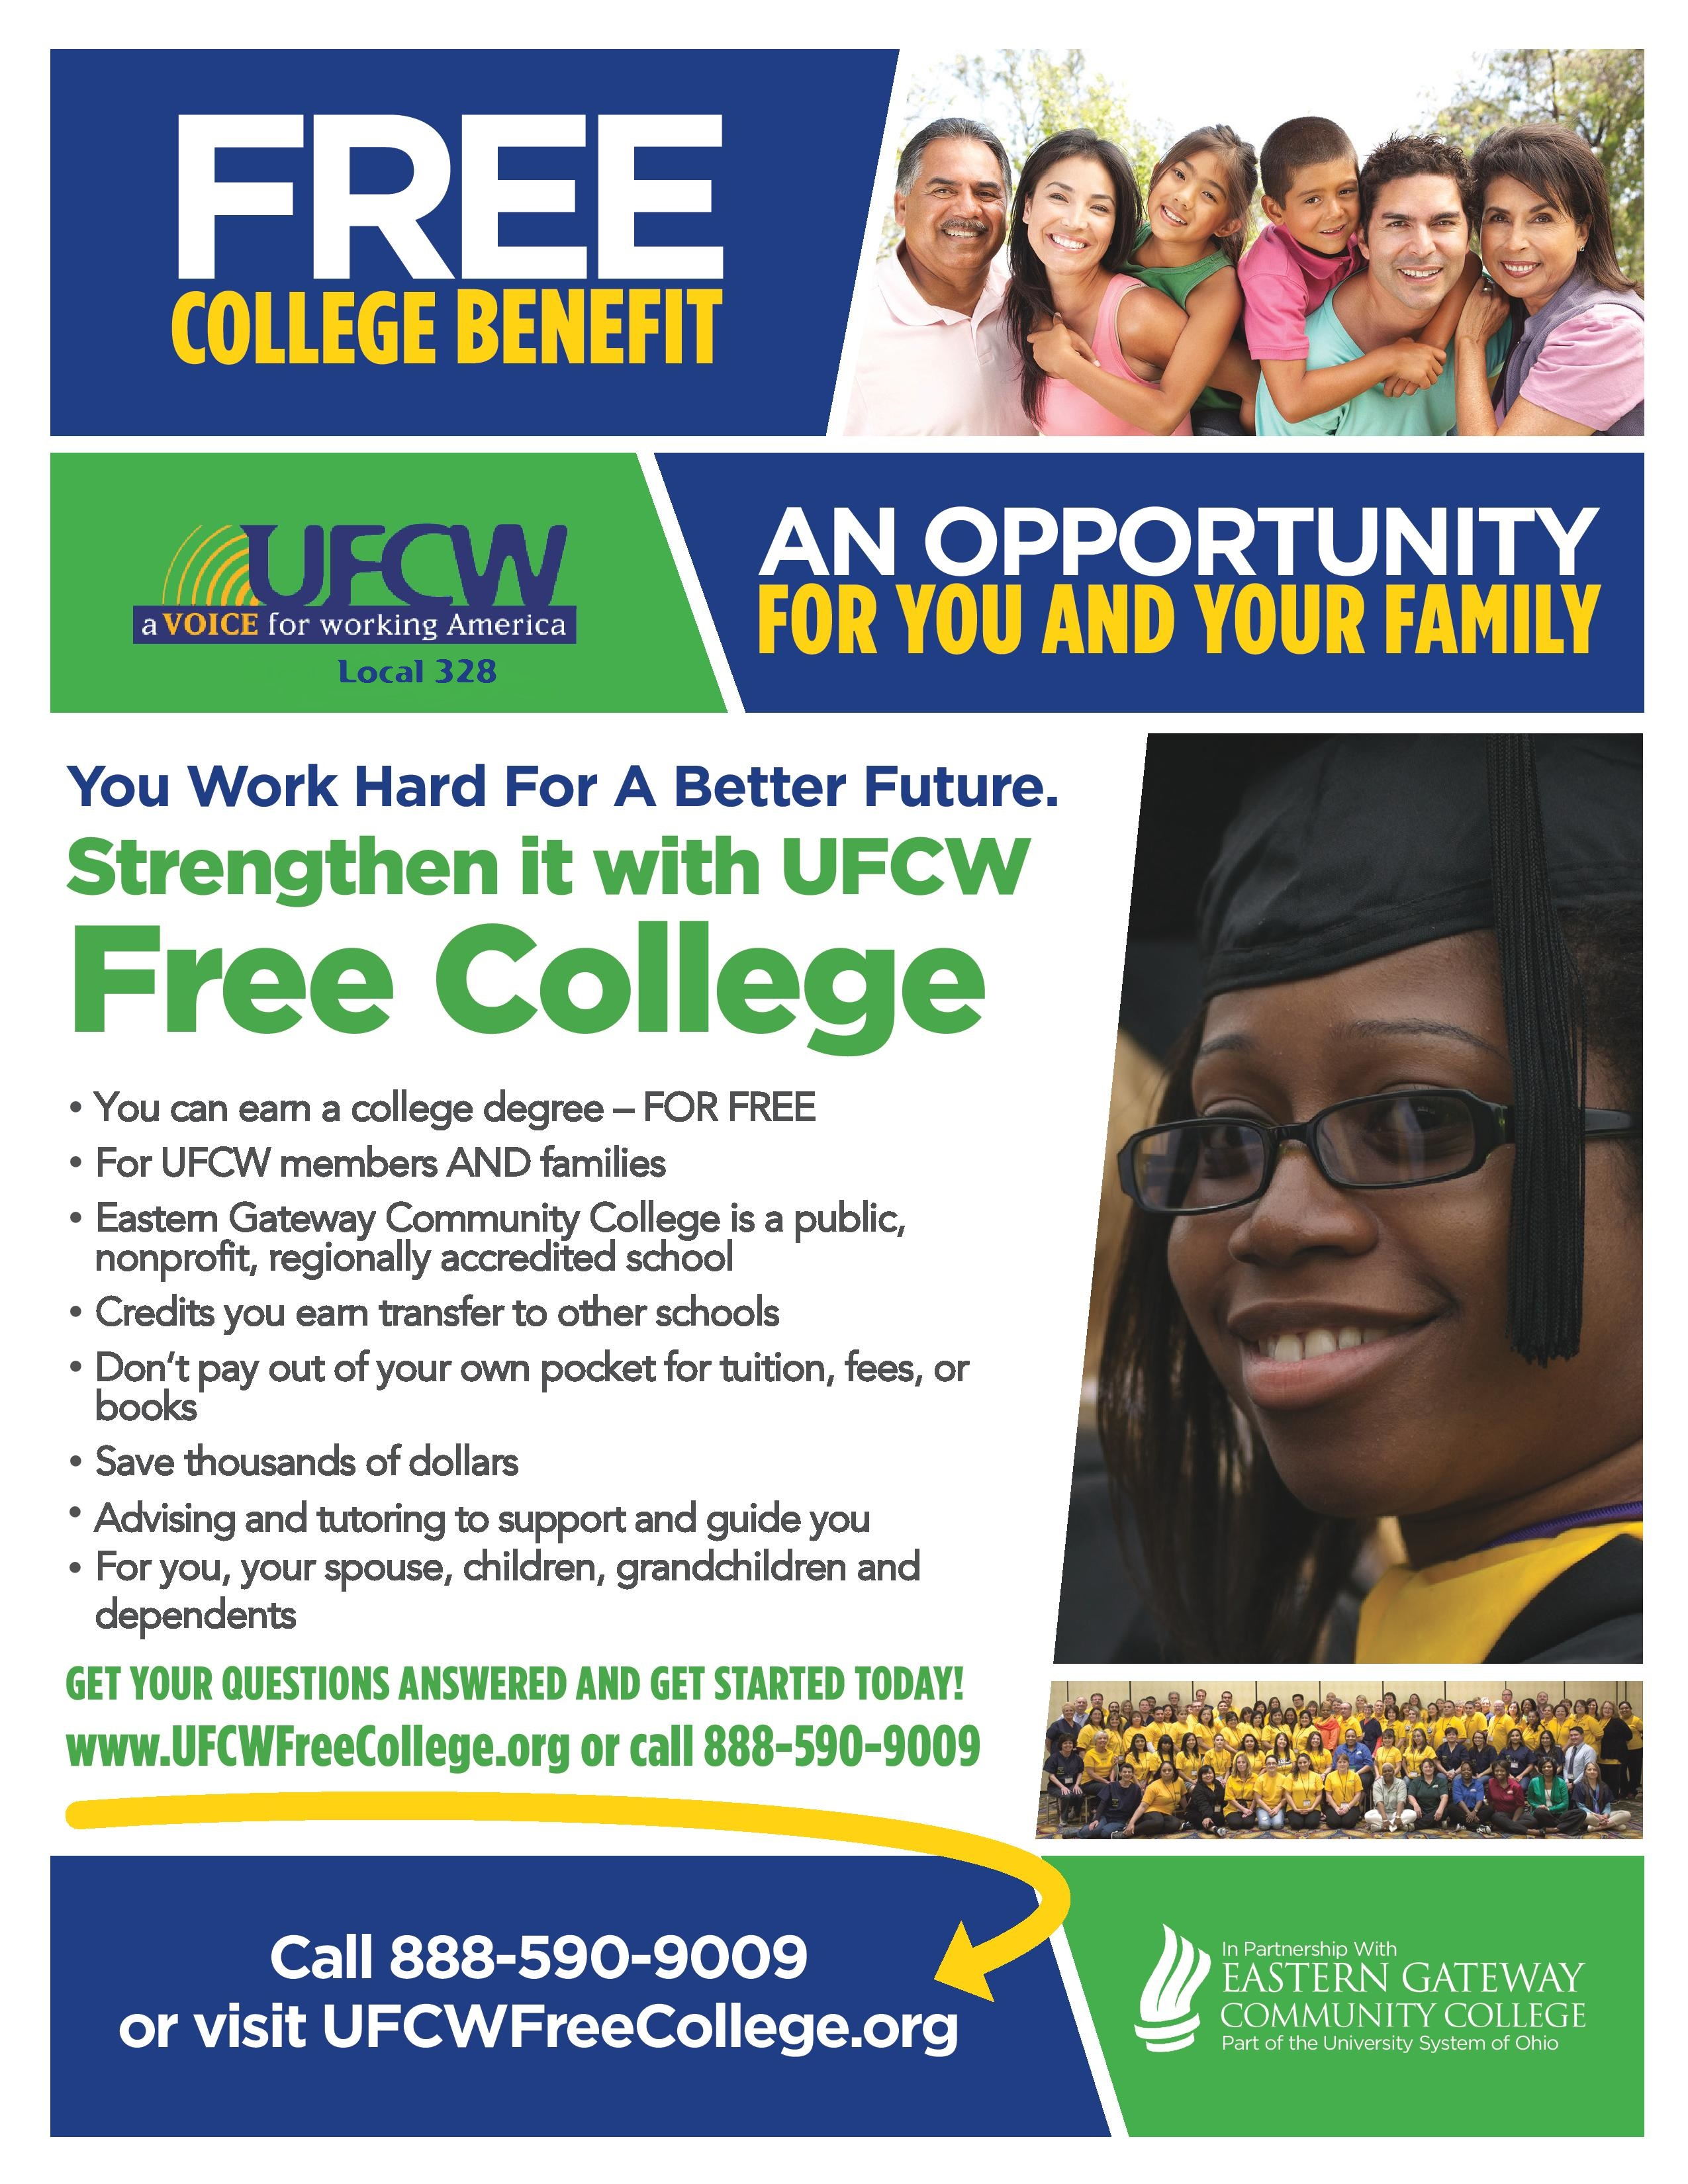 ufcw free college flyer